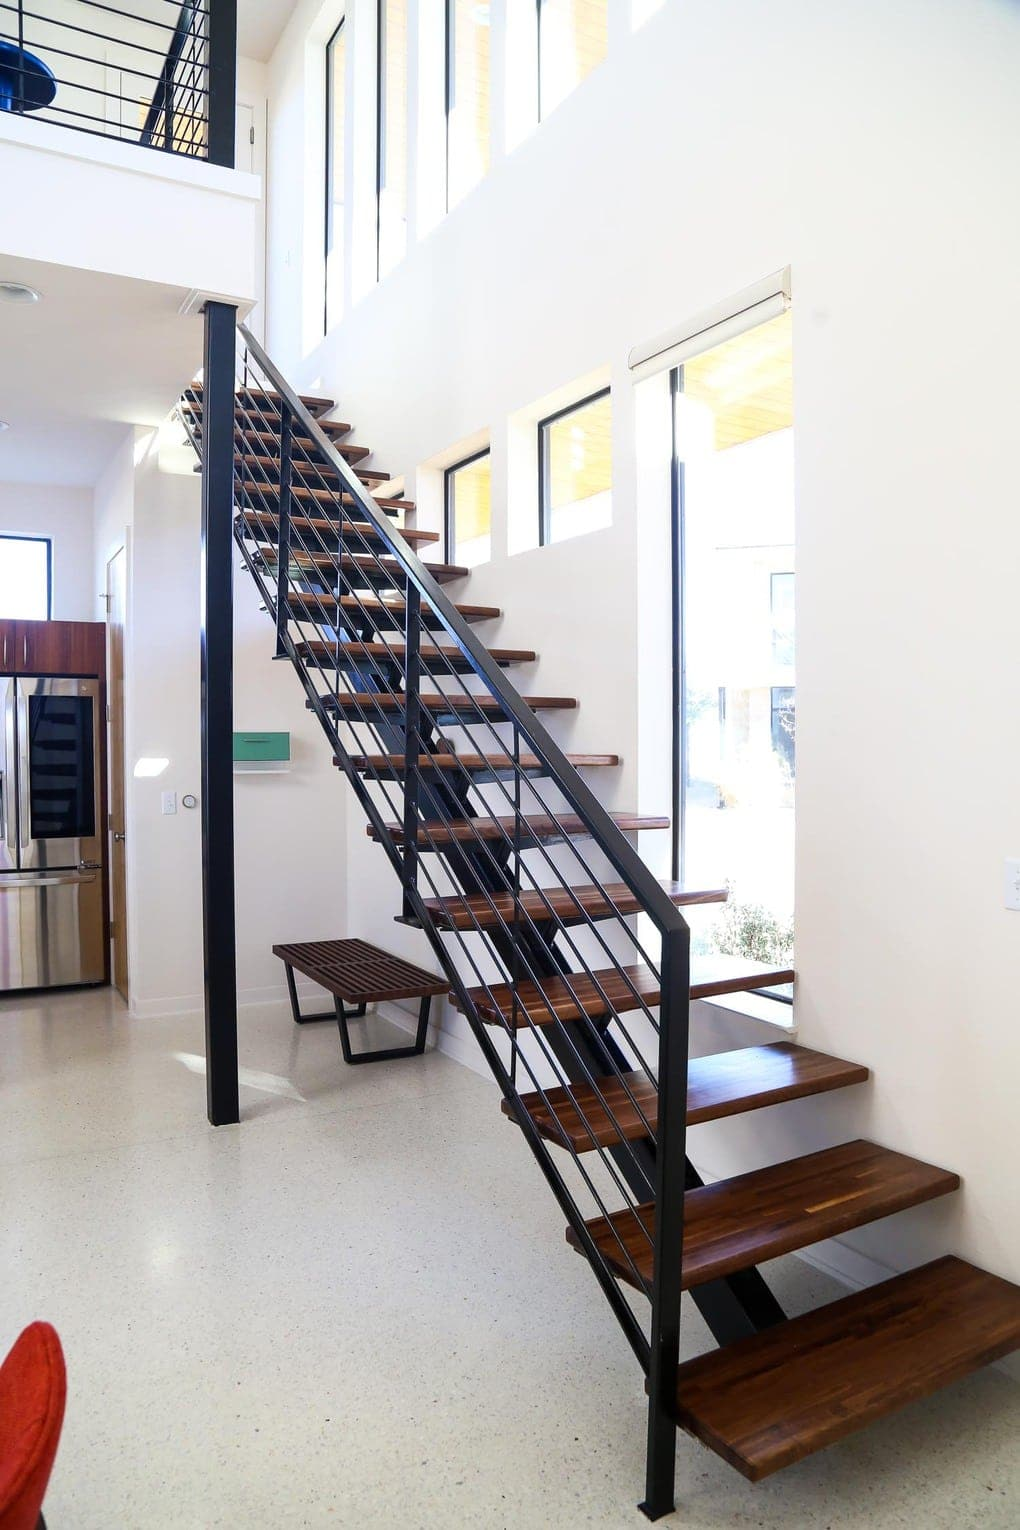 Gorgeous open staircase with midcentury modern design